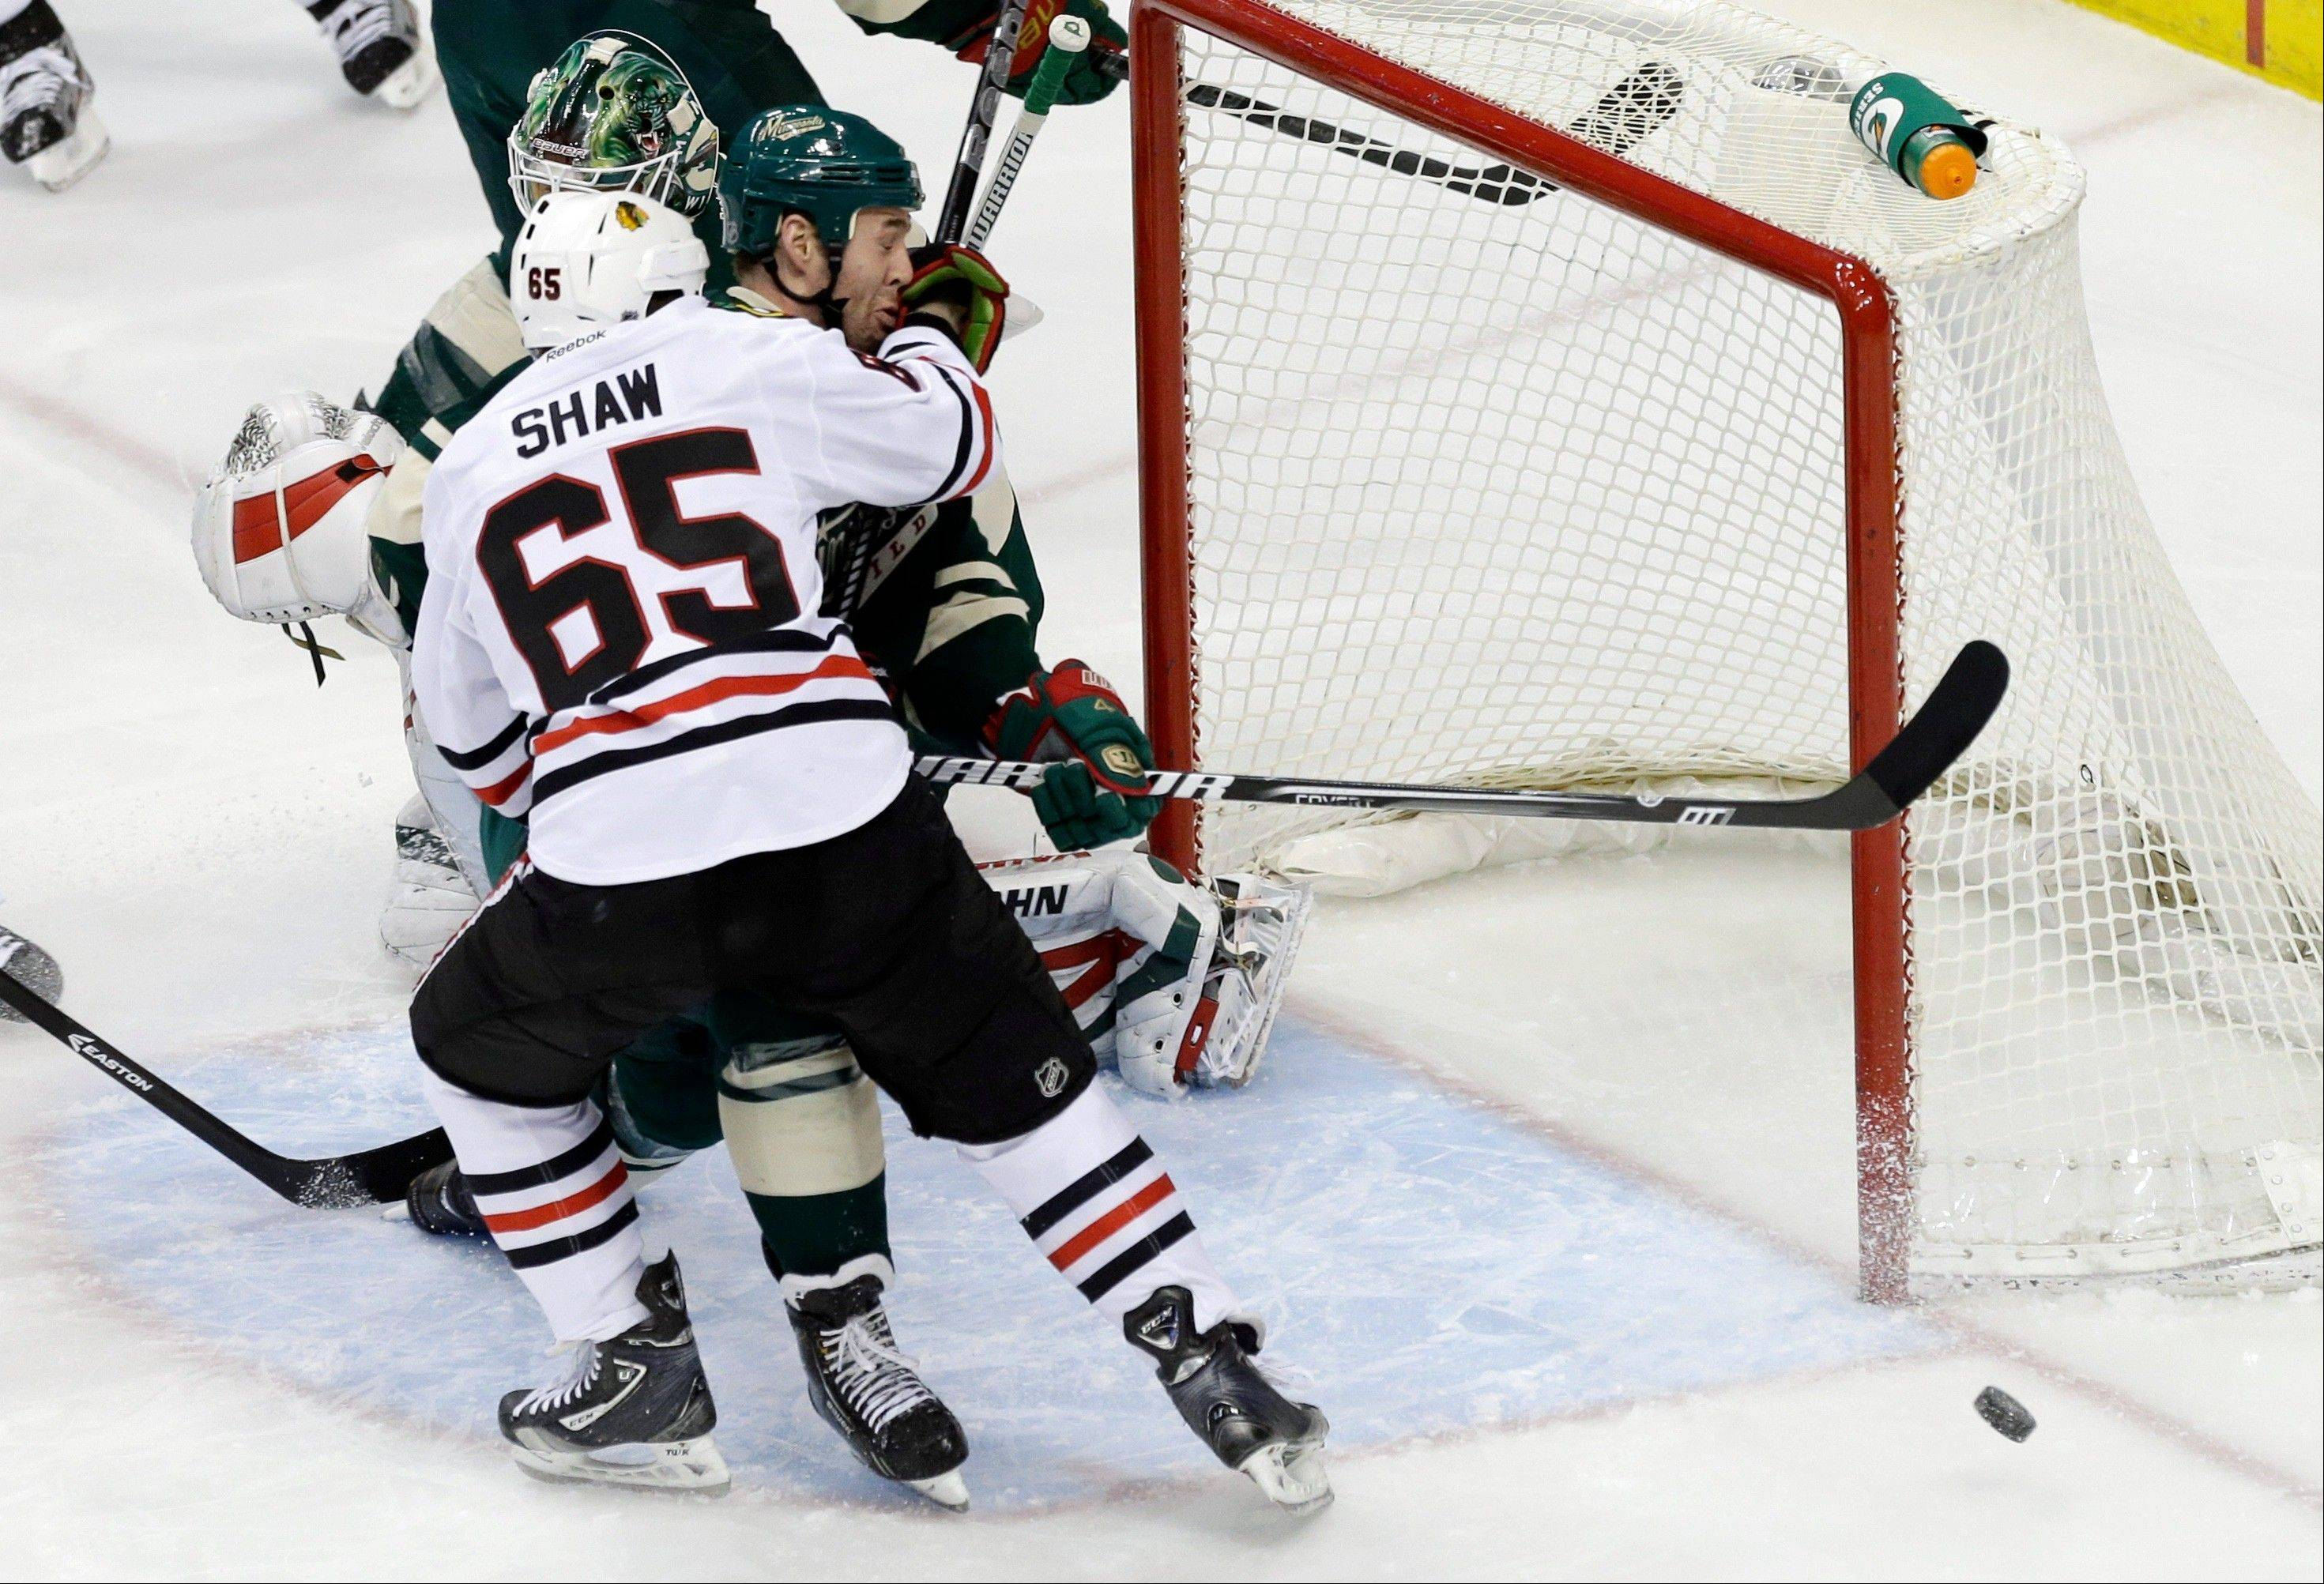 Chicago Blackhawks' Andrew Shaw keeps Minnesota Wild's Clayton Stoner from chasing the puck in his own end in the first period of an NHL hockey game Tuesday, April 9, 2013 in St. Paul.